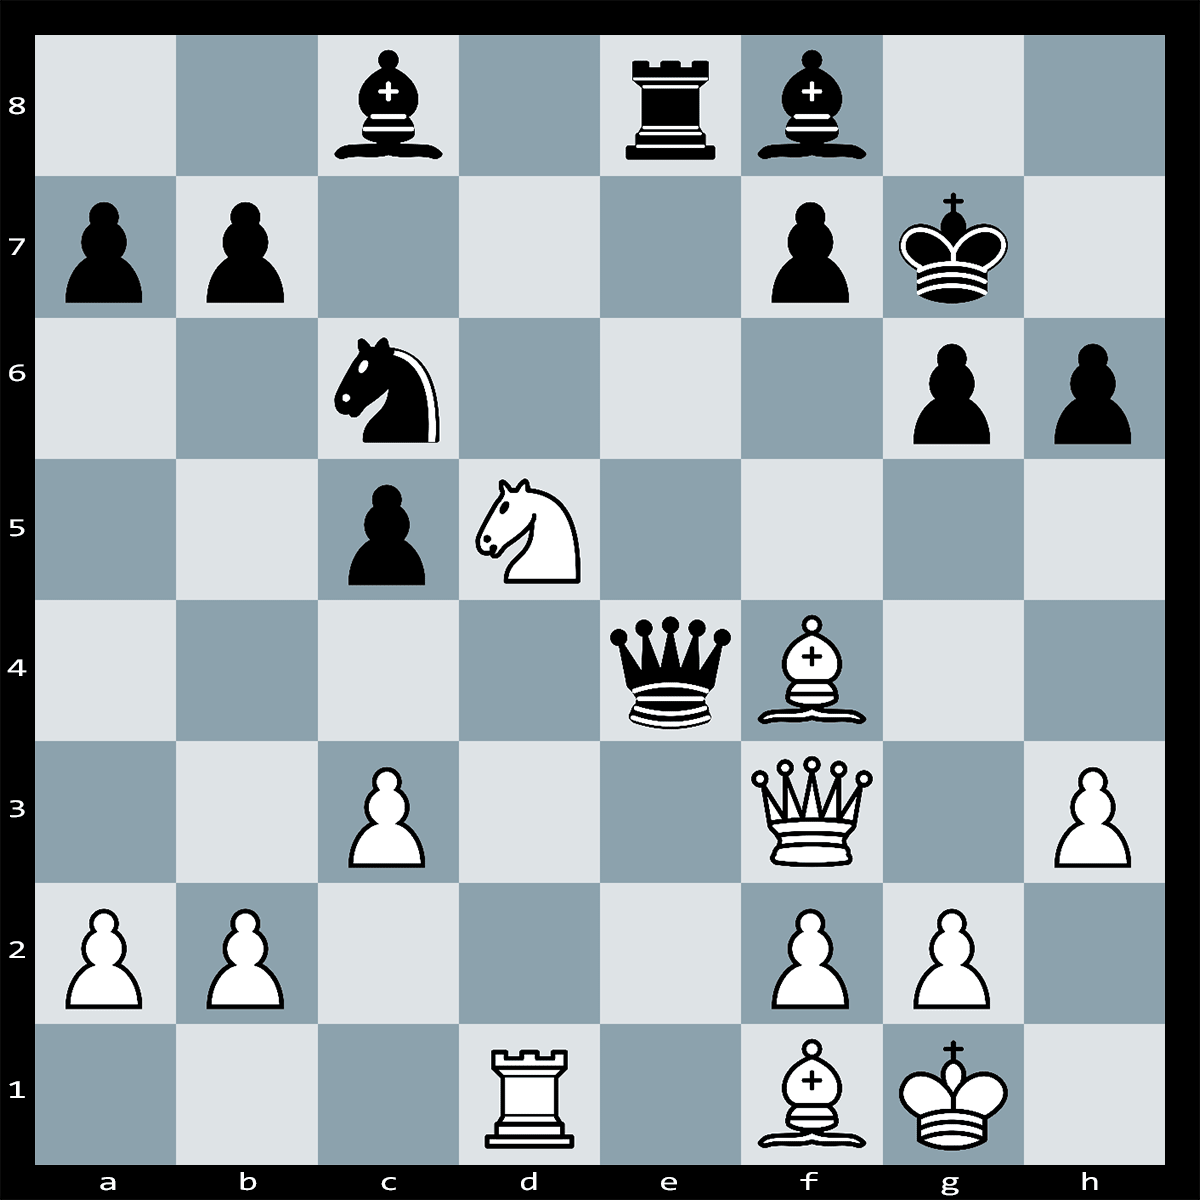 Chess Puzzle #340 Anatoly Karpov - Veselin Topalov 1994 | In this complex-looking position, white has a very strong move. Can you spot it?